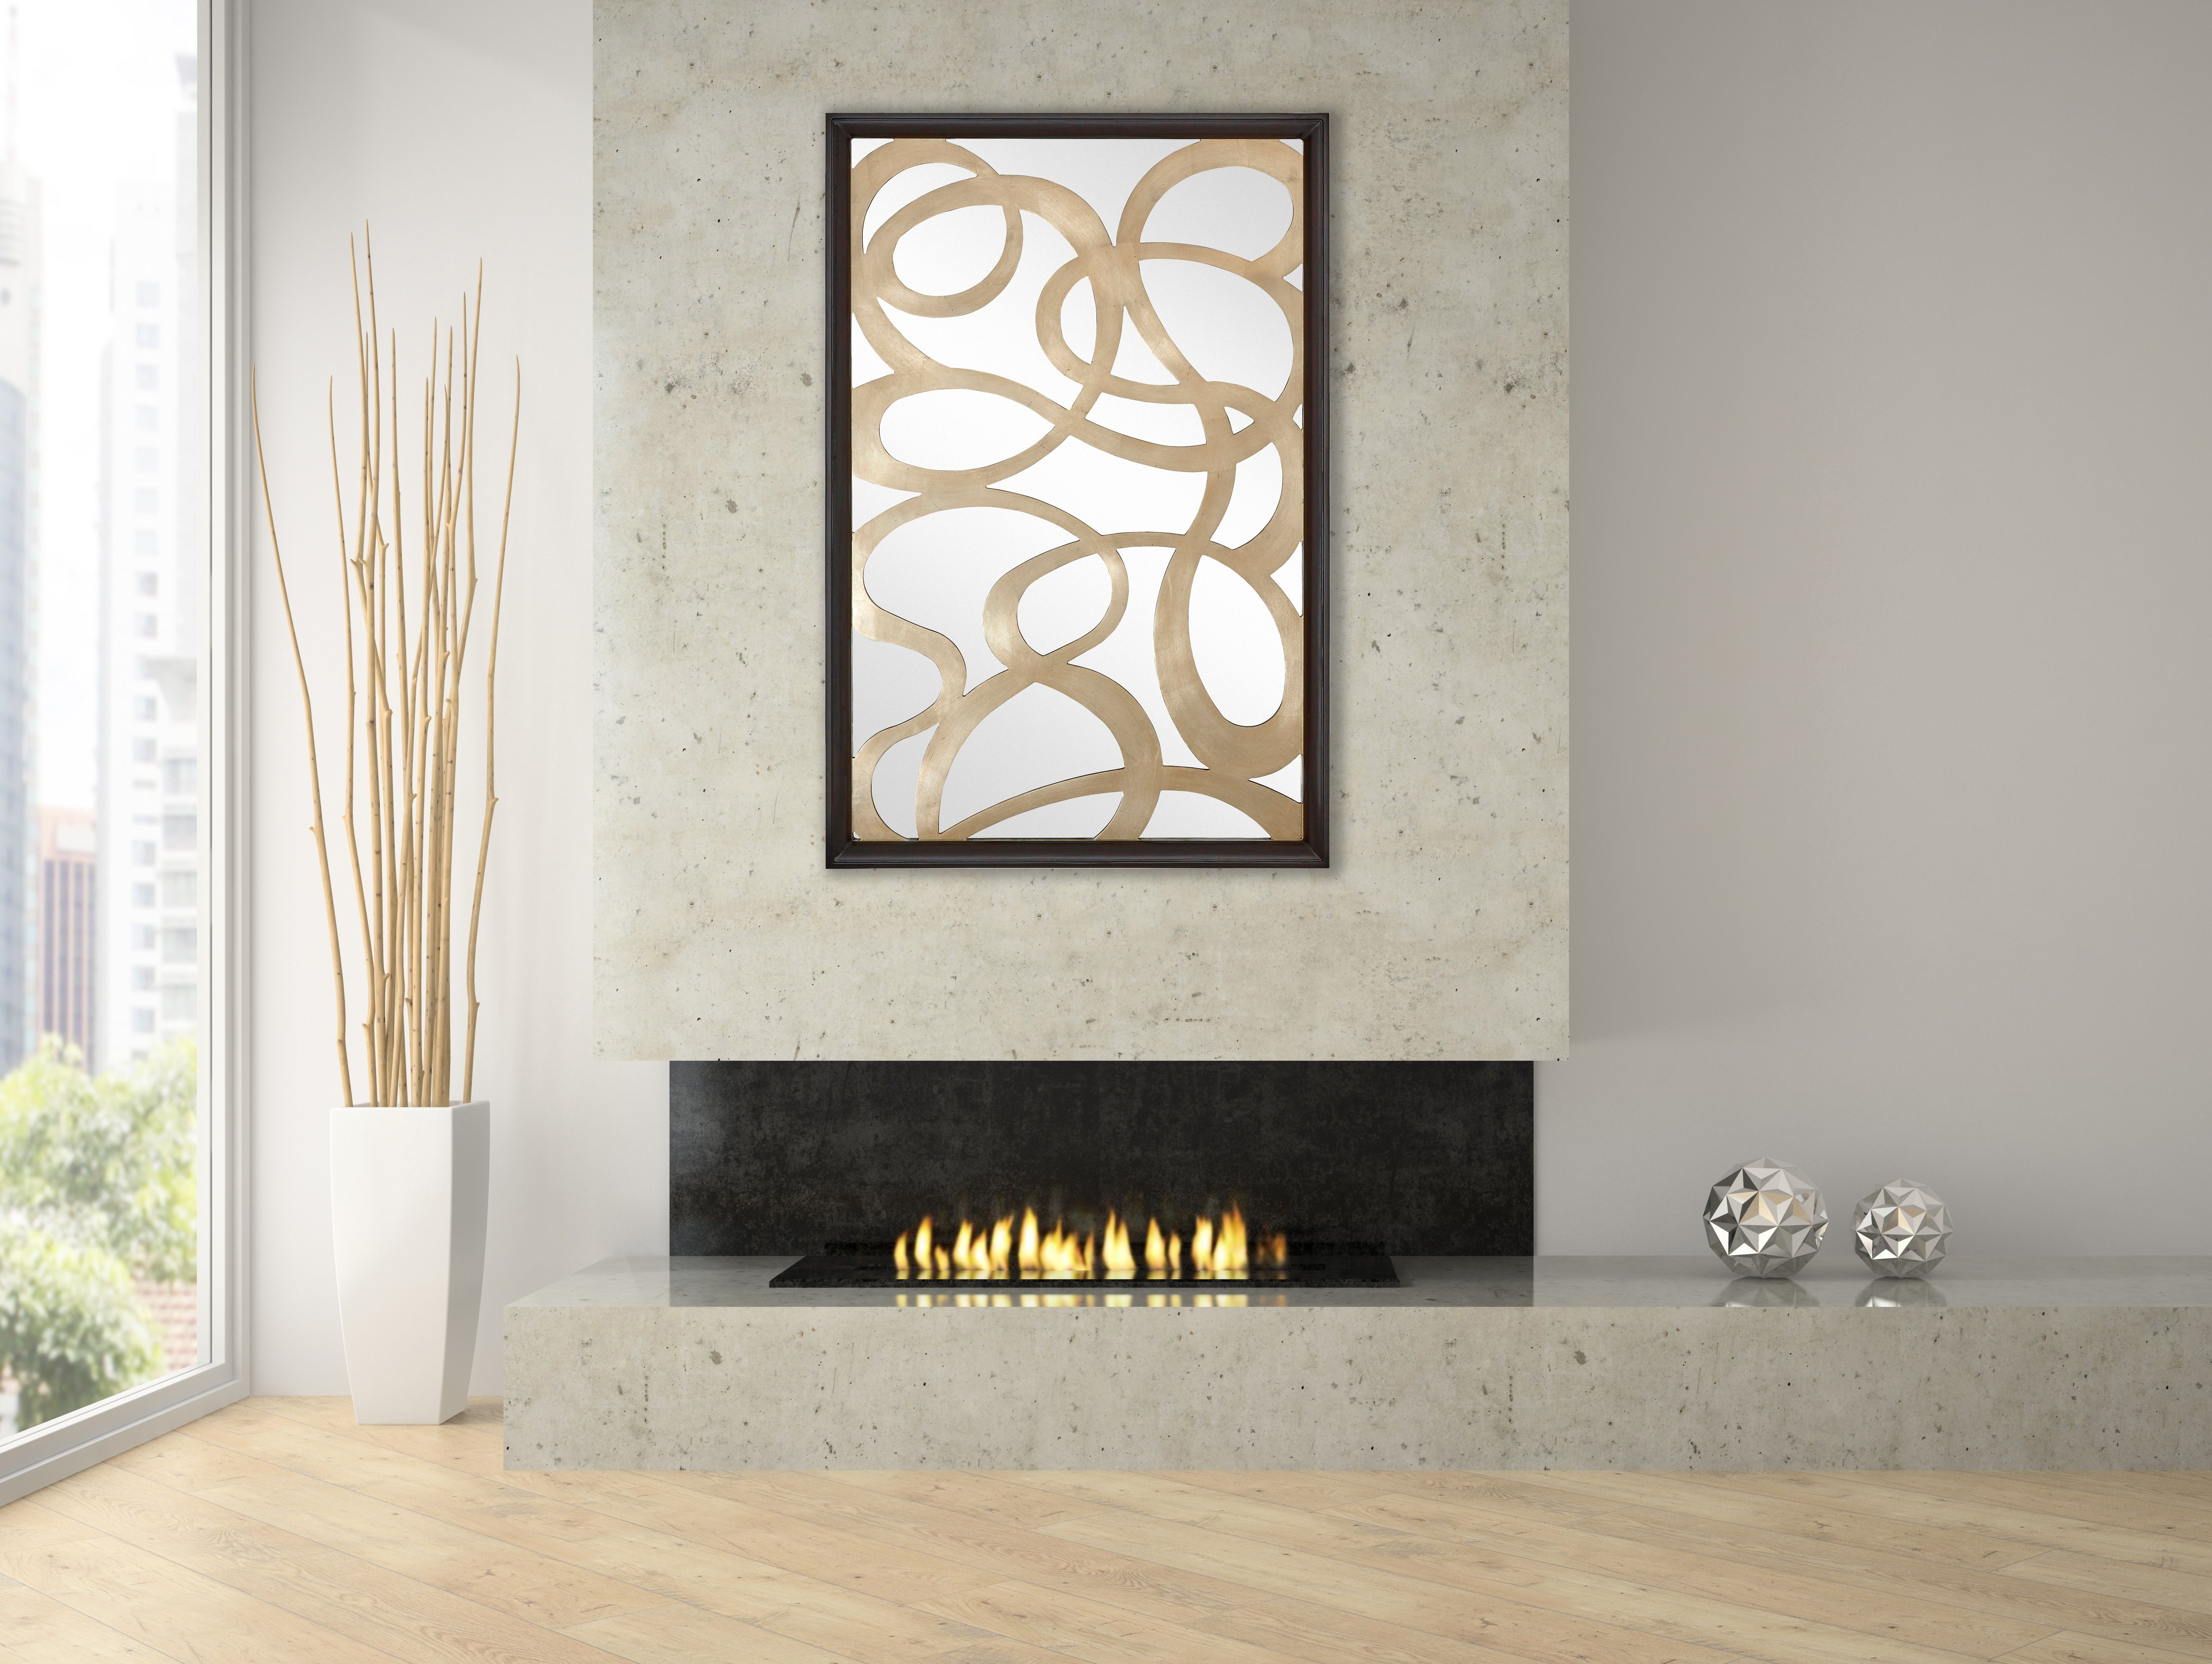 Look at how contemporary mirror #2605 adds visual interest over this living room fireplace.